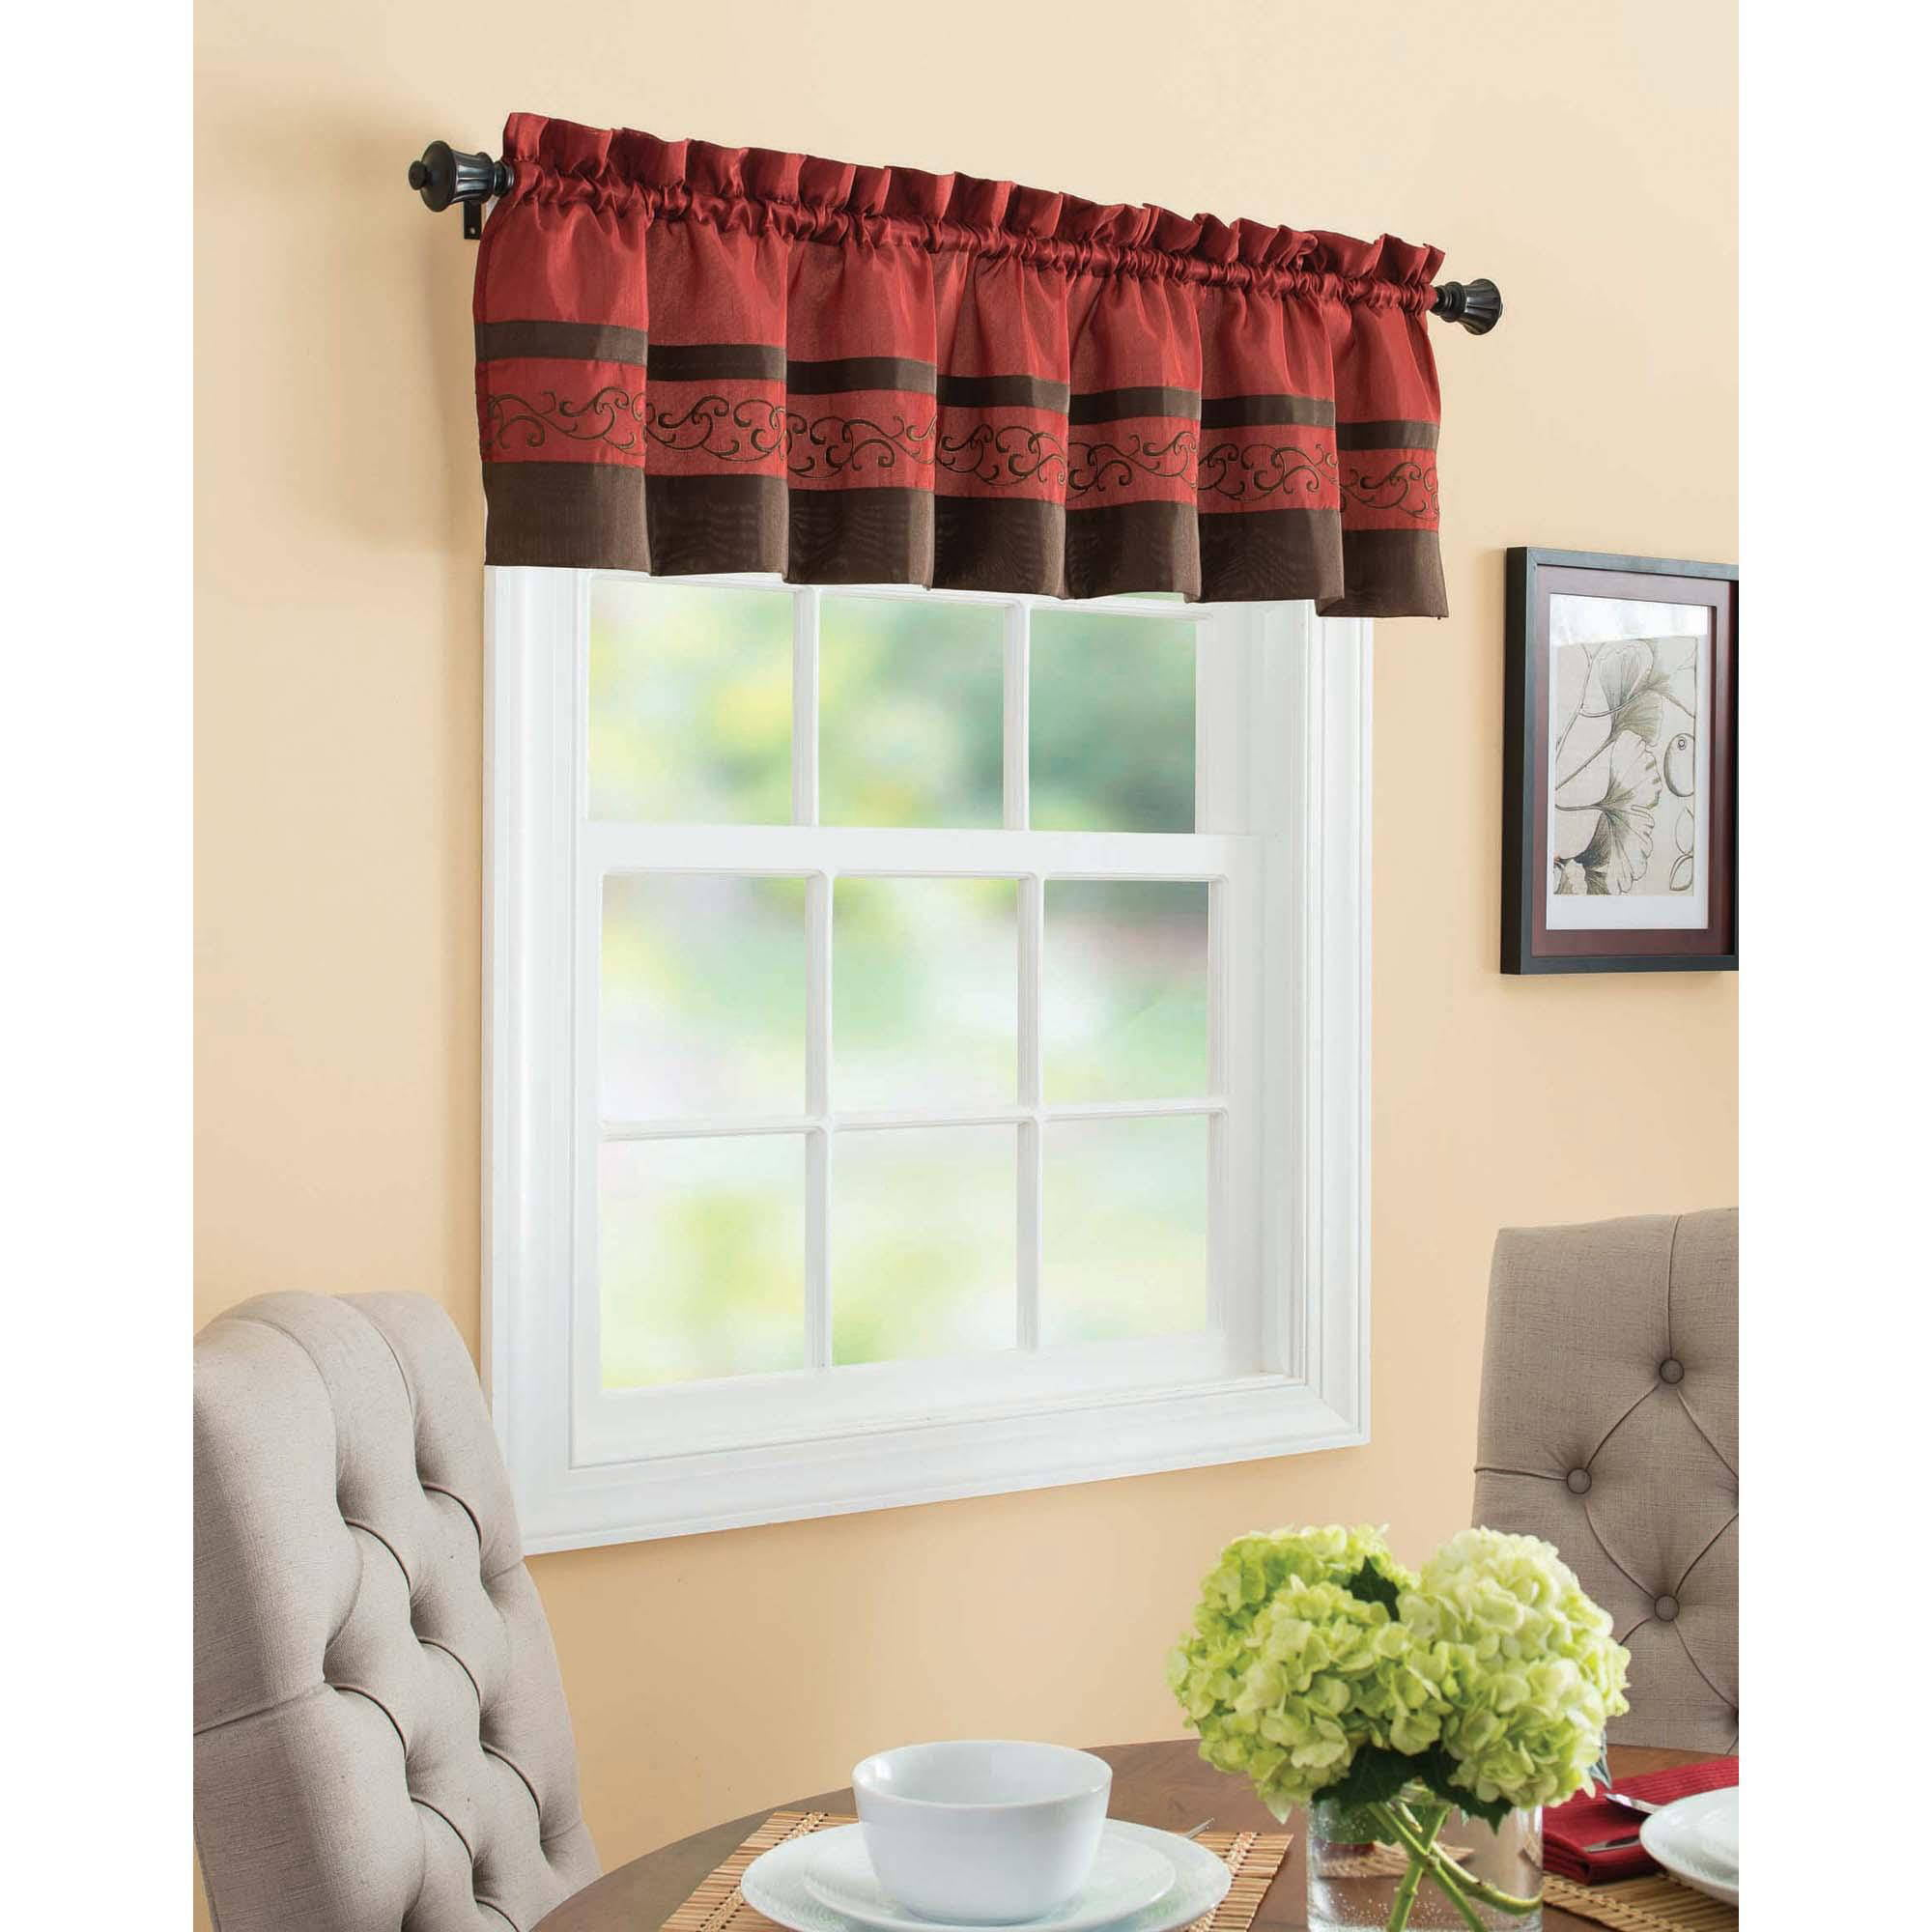 Attrayant Pioneer Woman Kitchen Curtain And Valance 3pc Set, Charming Check, Red    Walmart.com